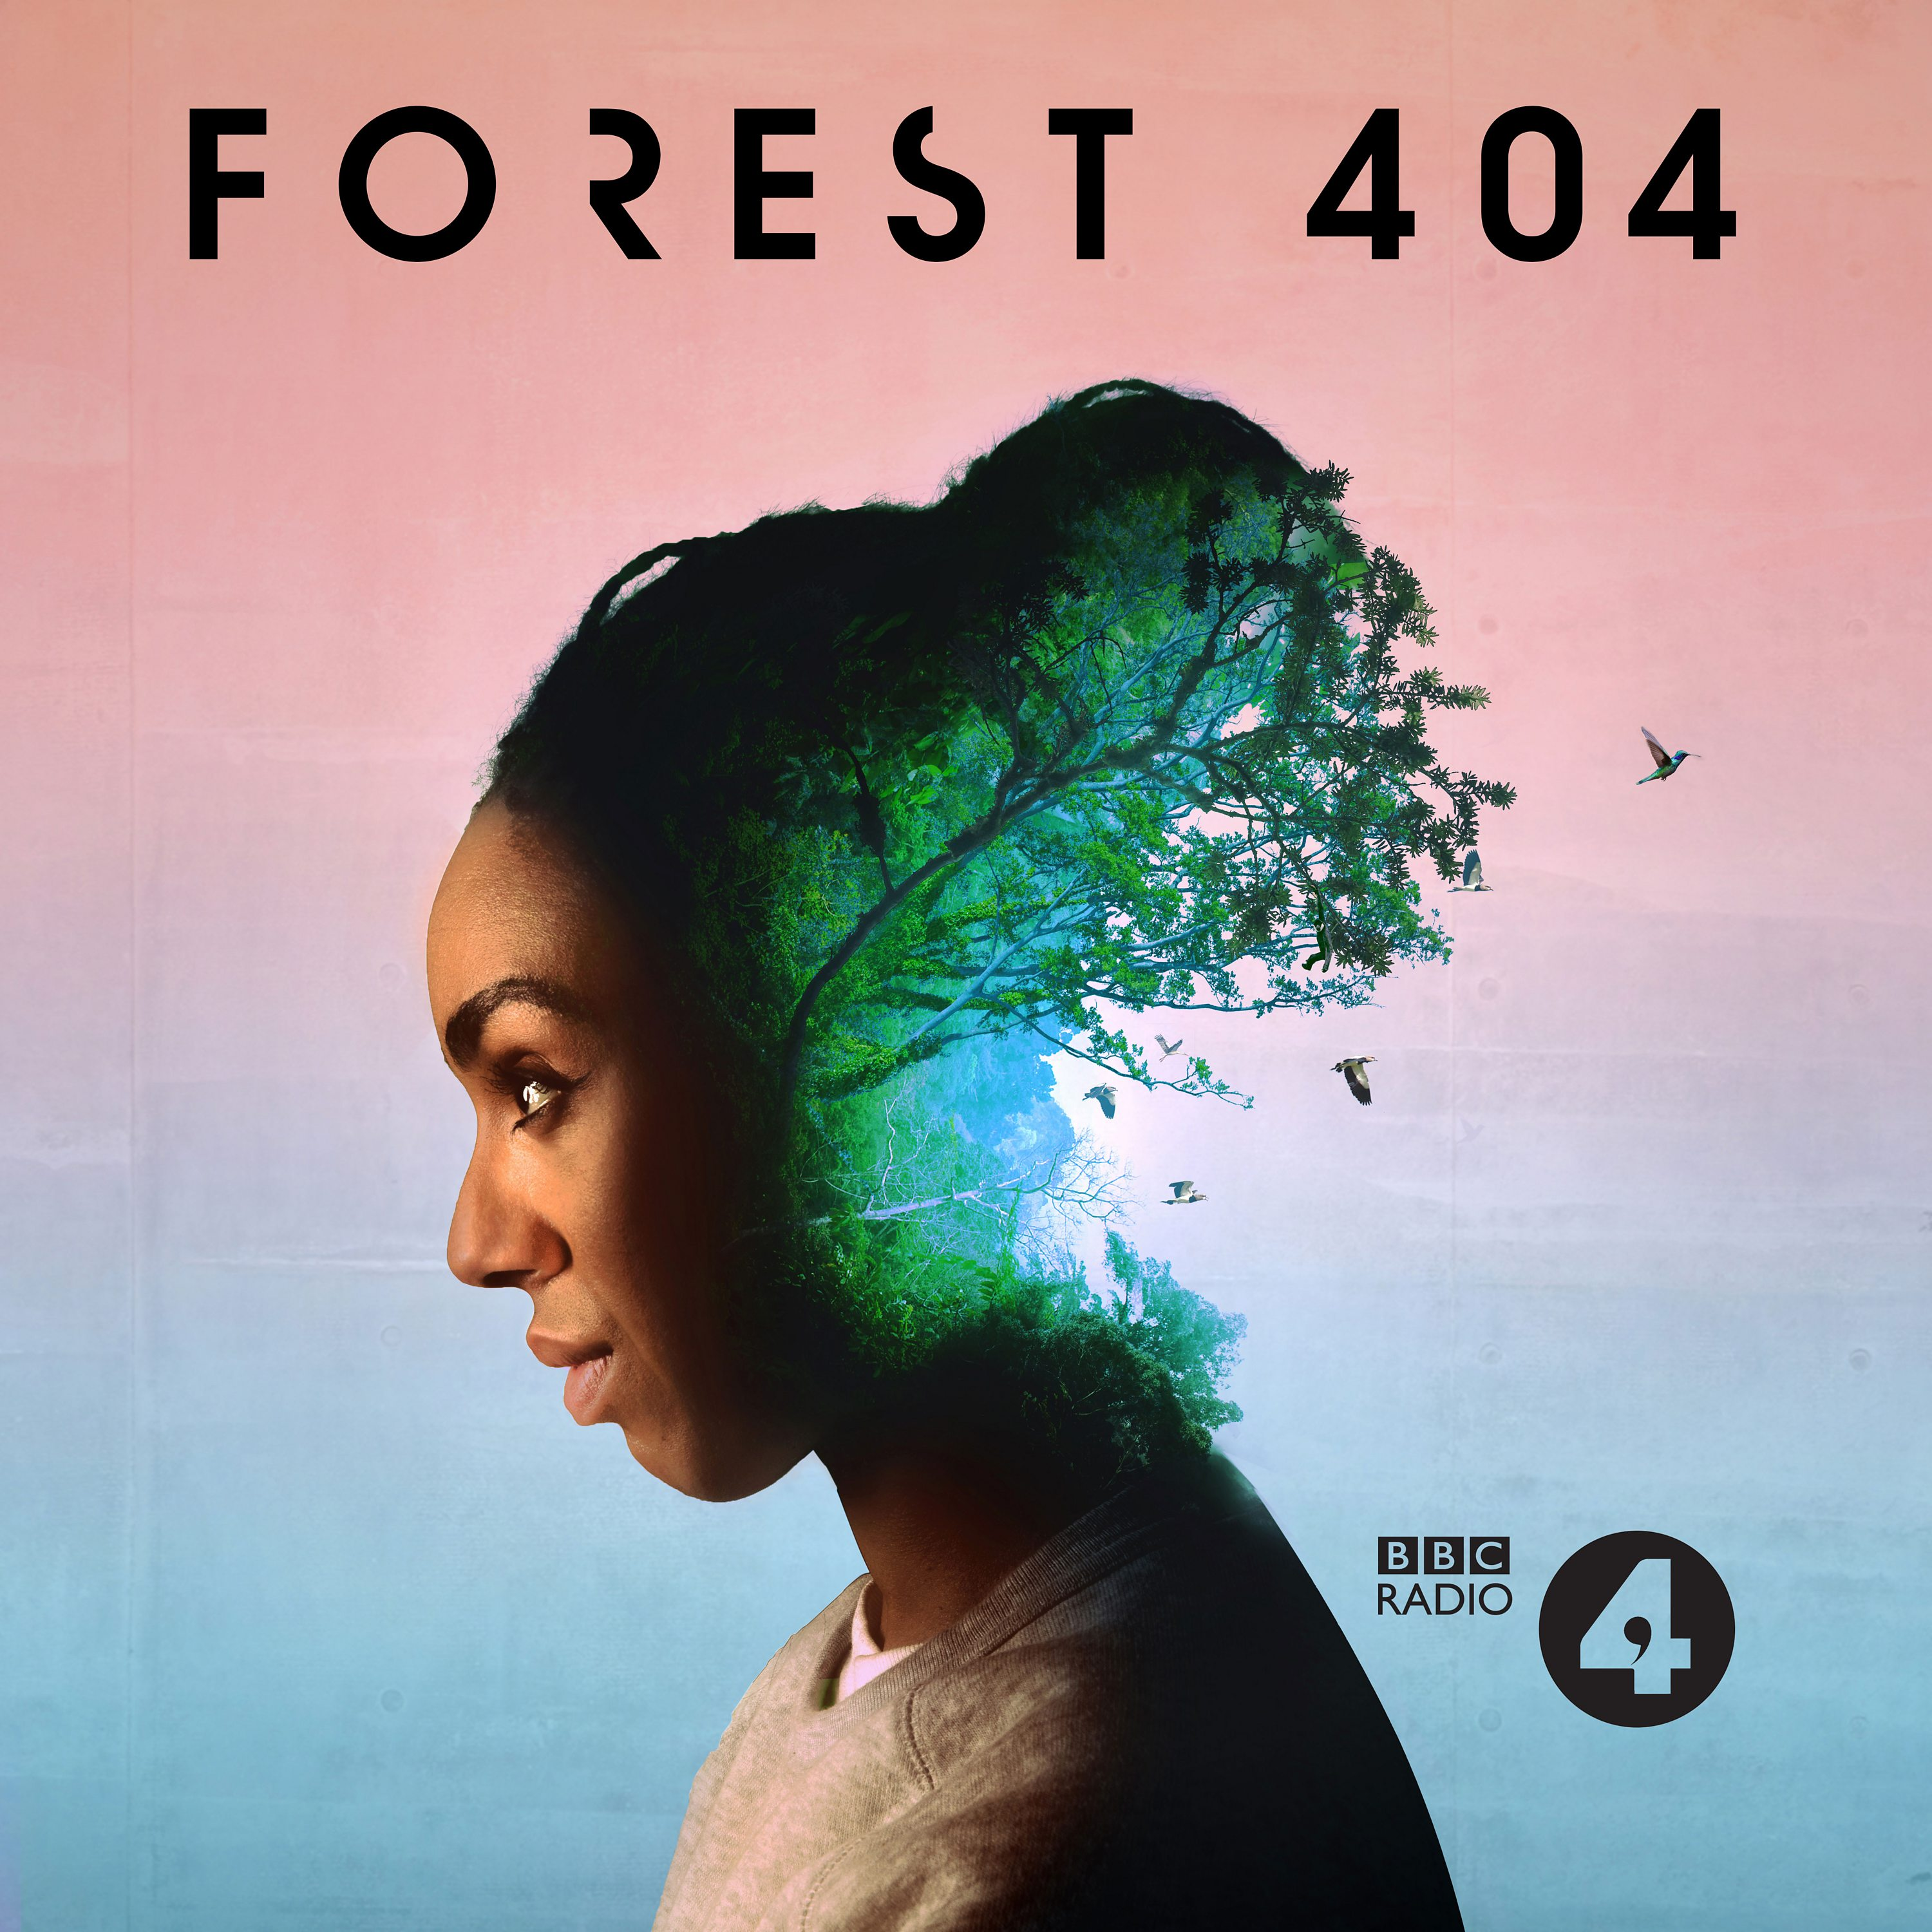 Ep0: Enter The Forest